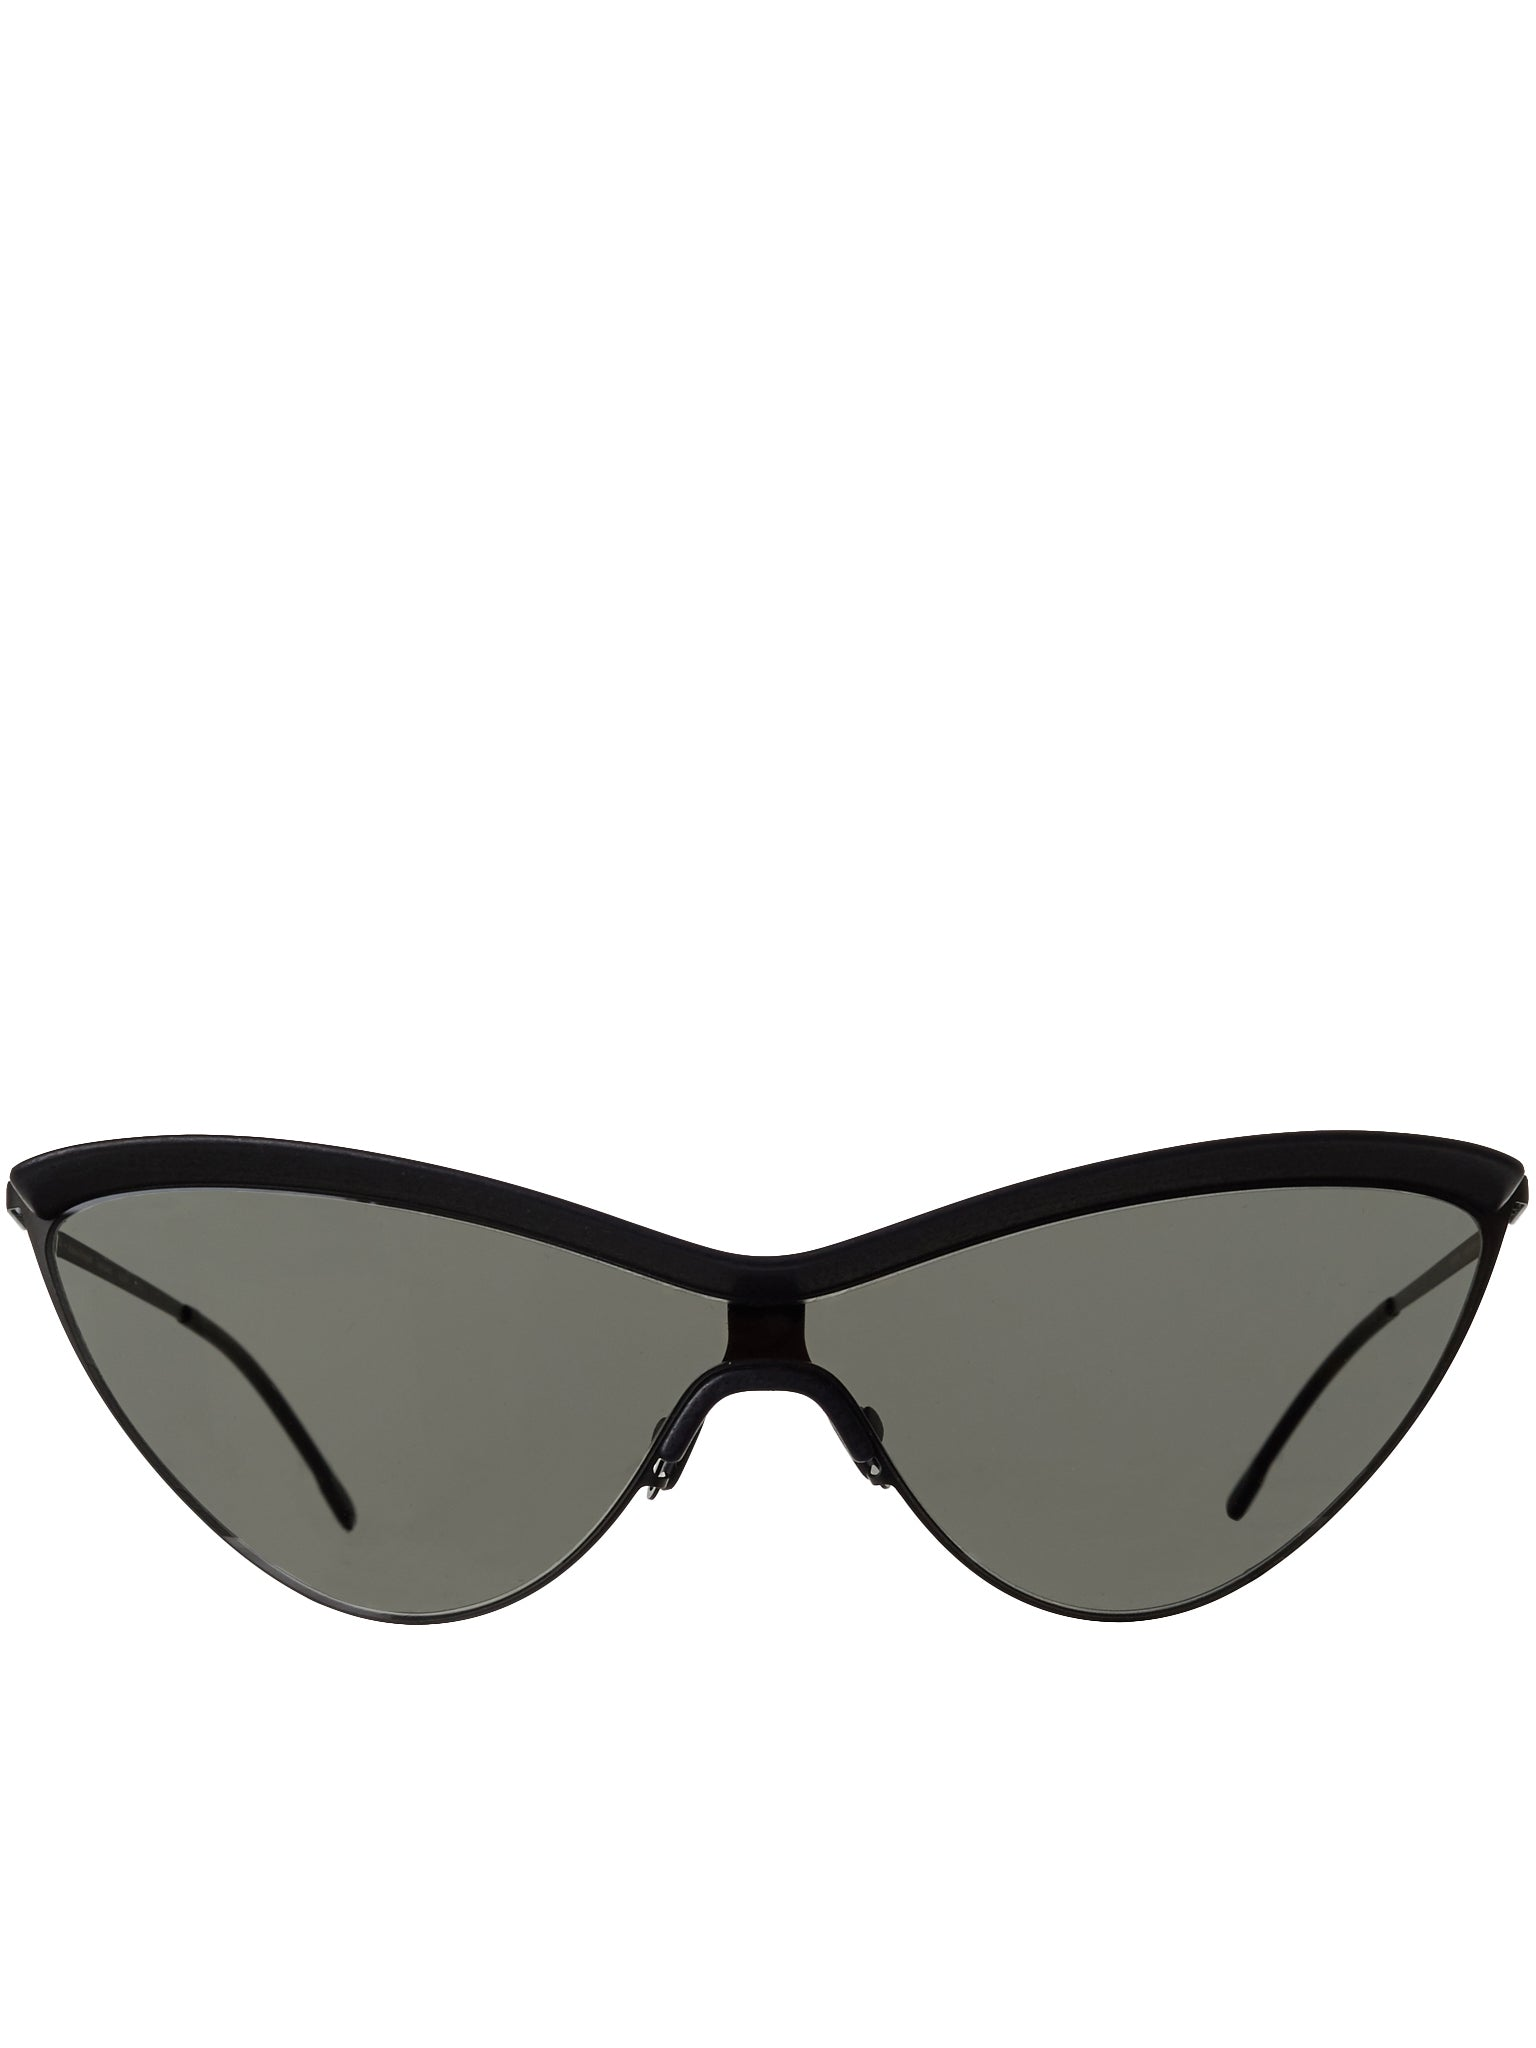 'MMECHO002' Cat Eye Sunglasses (MMECHO002-MH6-PBLK-BLK-DGREY)